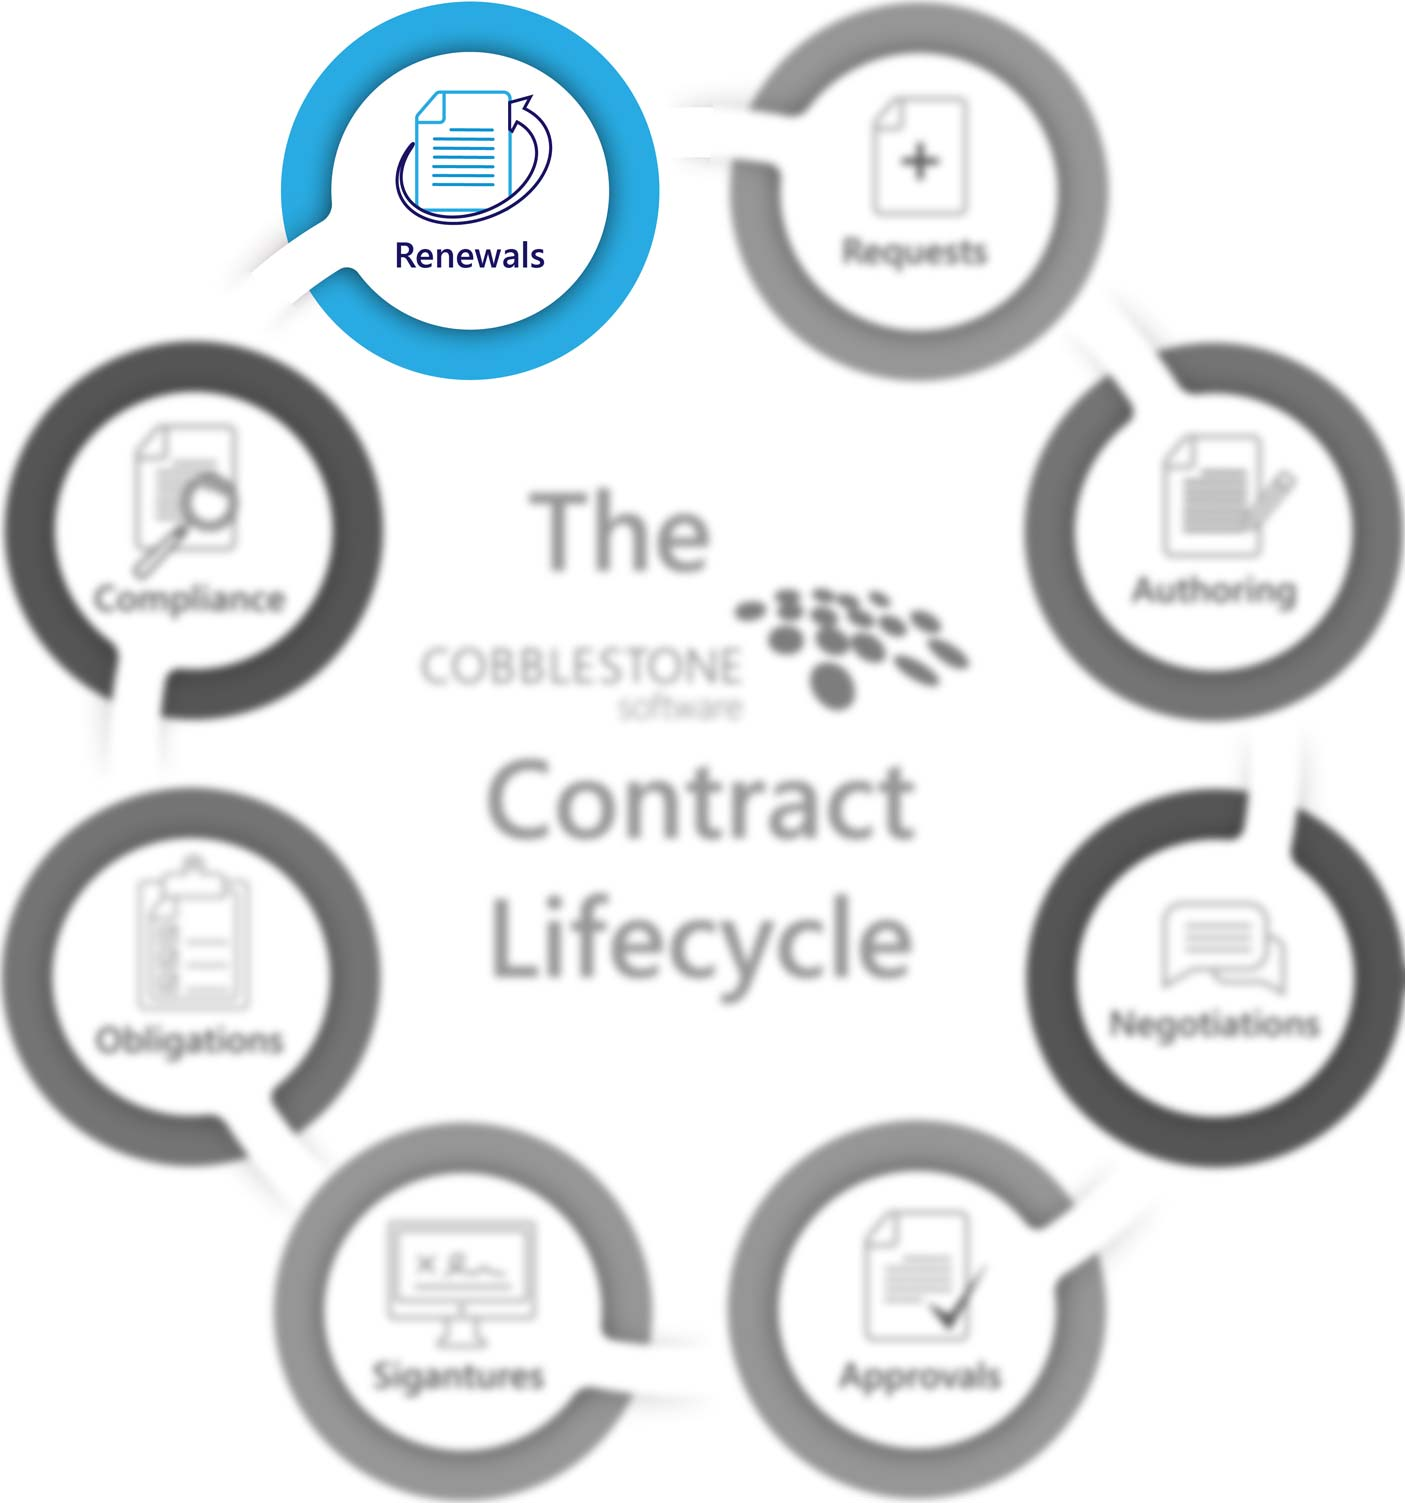 CobbleStone Software presents the contract renewal stage of the contract lifecycle.